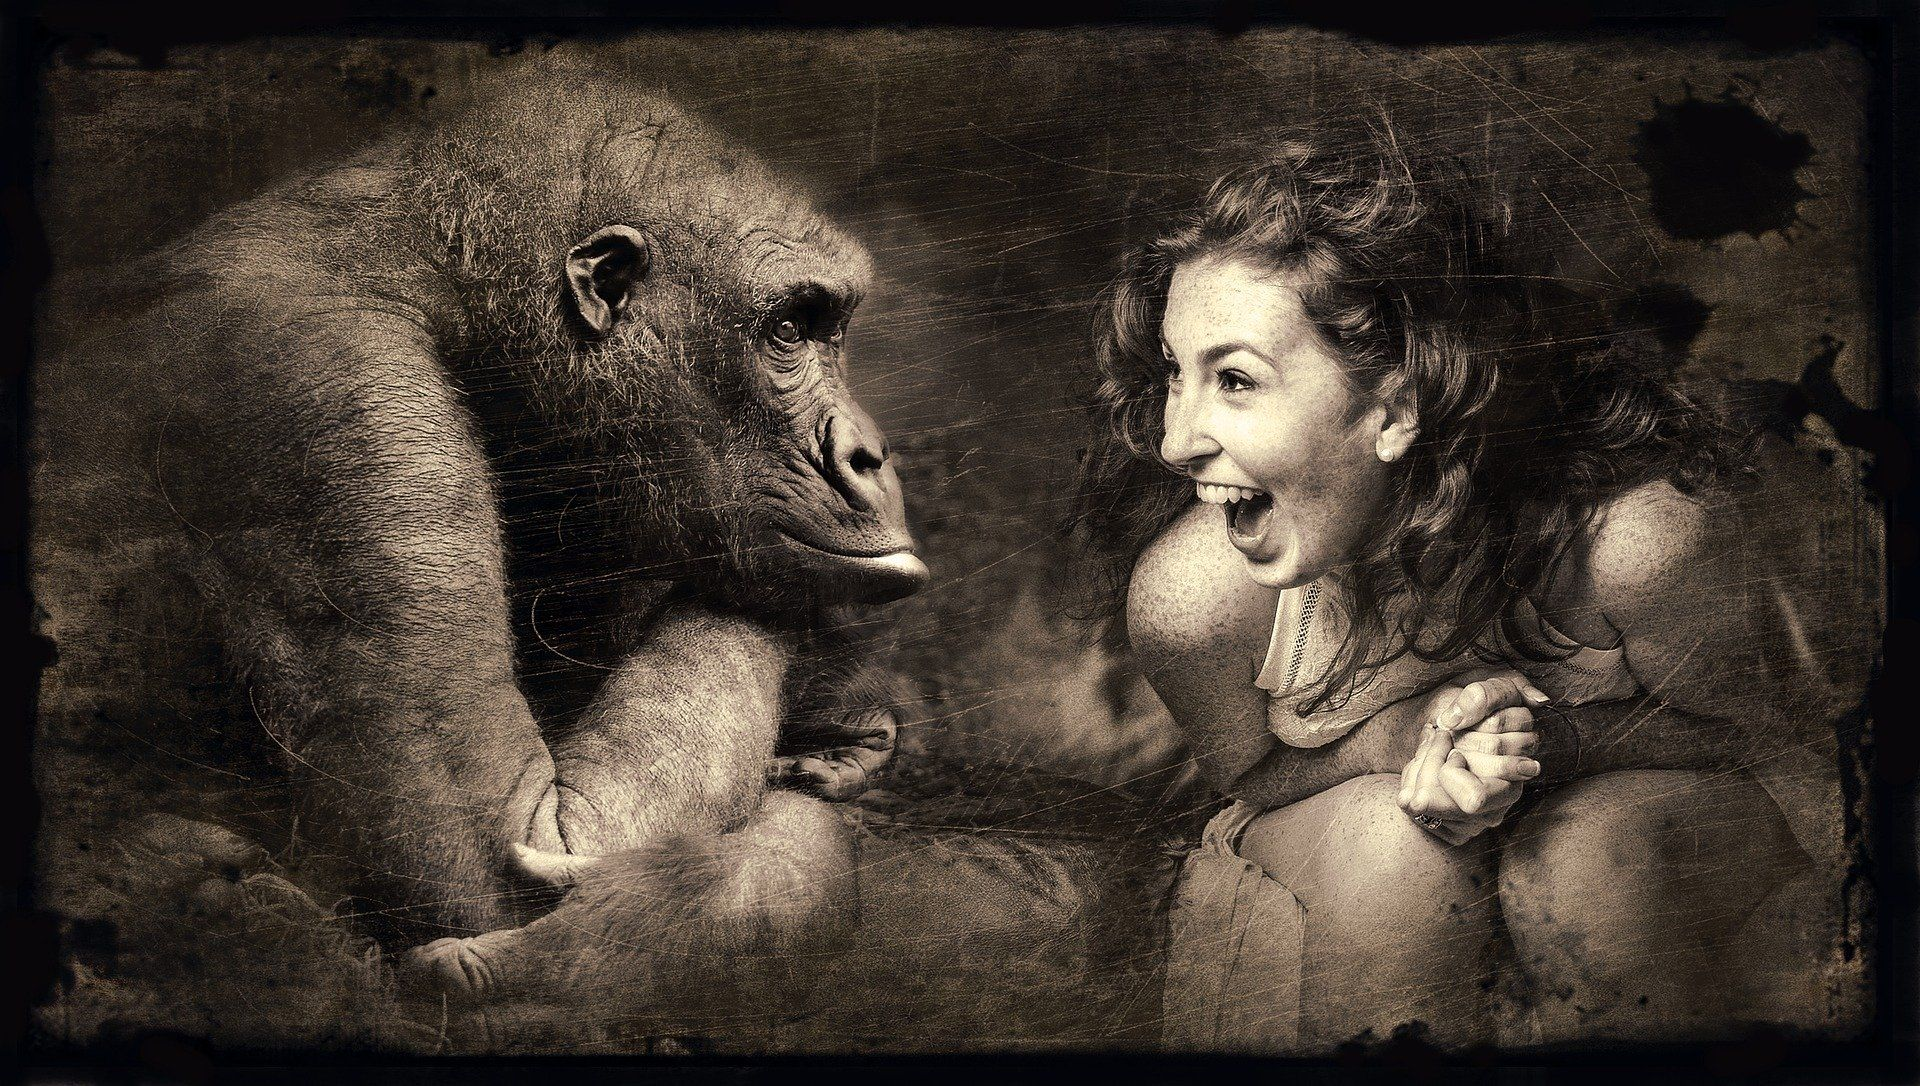 Girl talking to a gorilla to learn a language